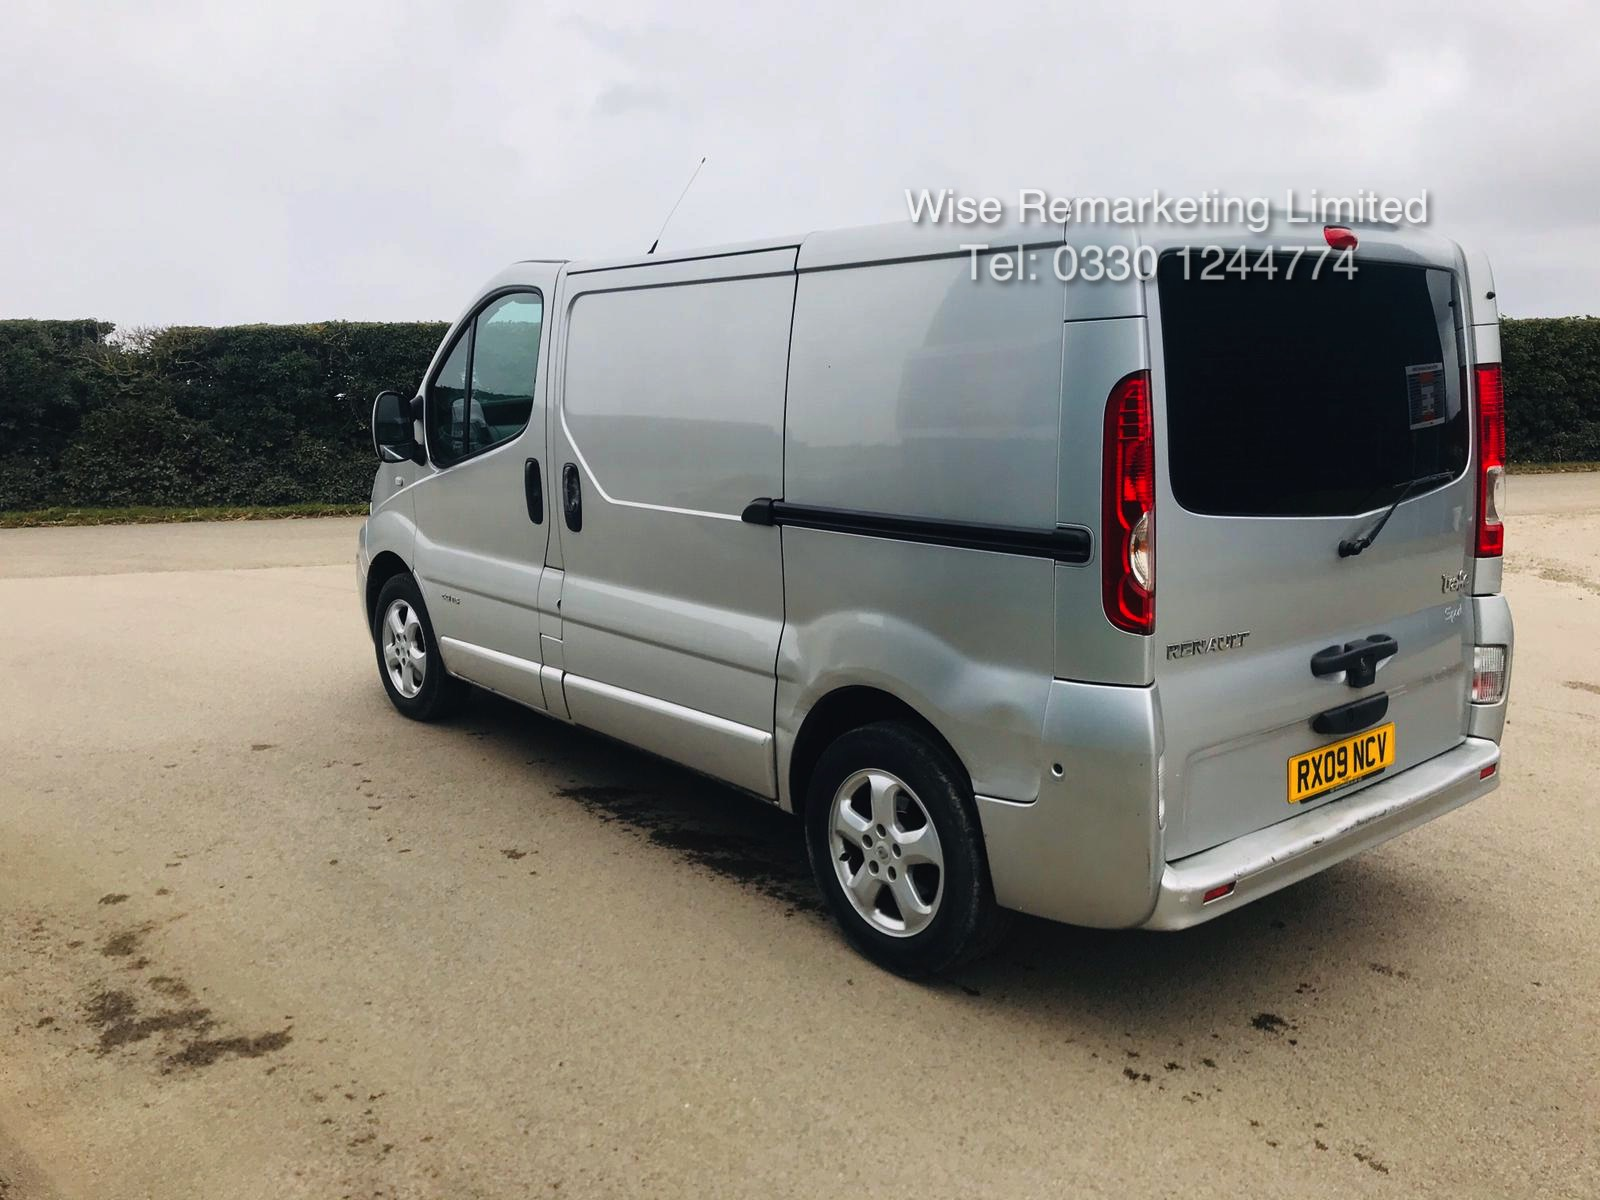 Renault Trafic Sport 2.0 DCI (115 BHP) **Automatic** - 2009 09 Reg - Air Con - Ply lined - Image 5 of 16